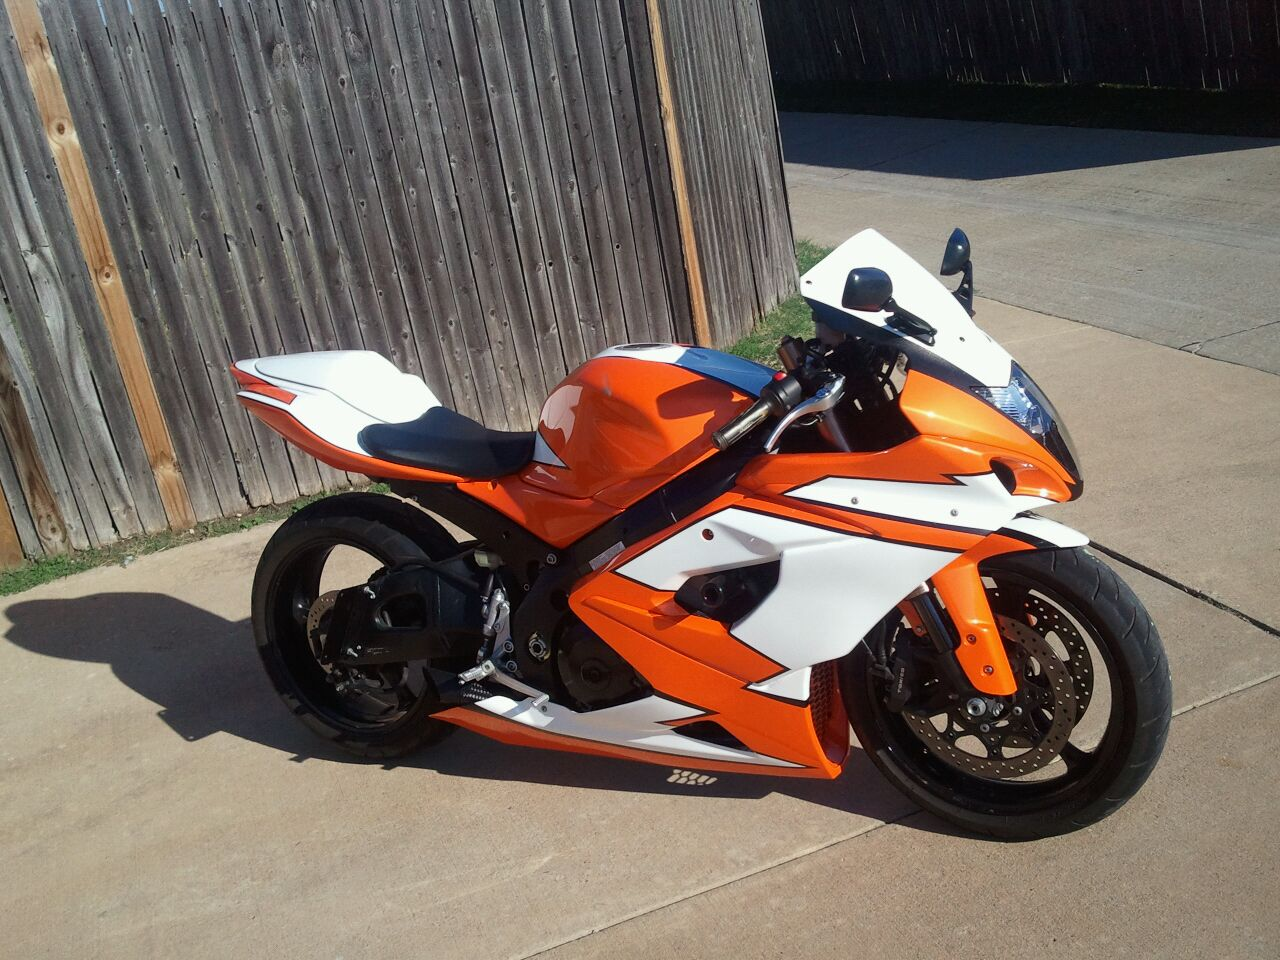 custom-paint-ideas-06-gsxr-1000-2011-10-17_16.30.13.jpg